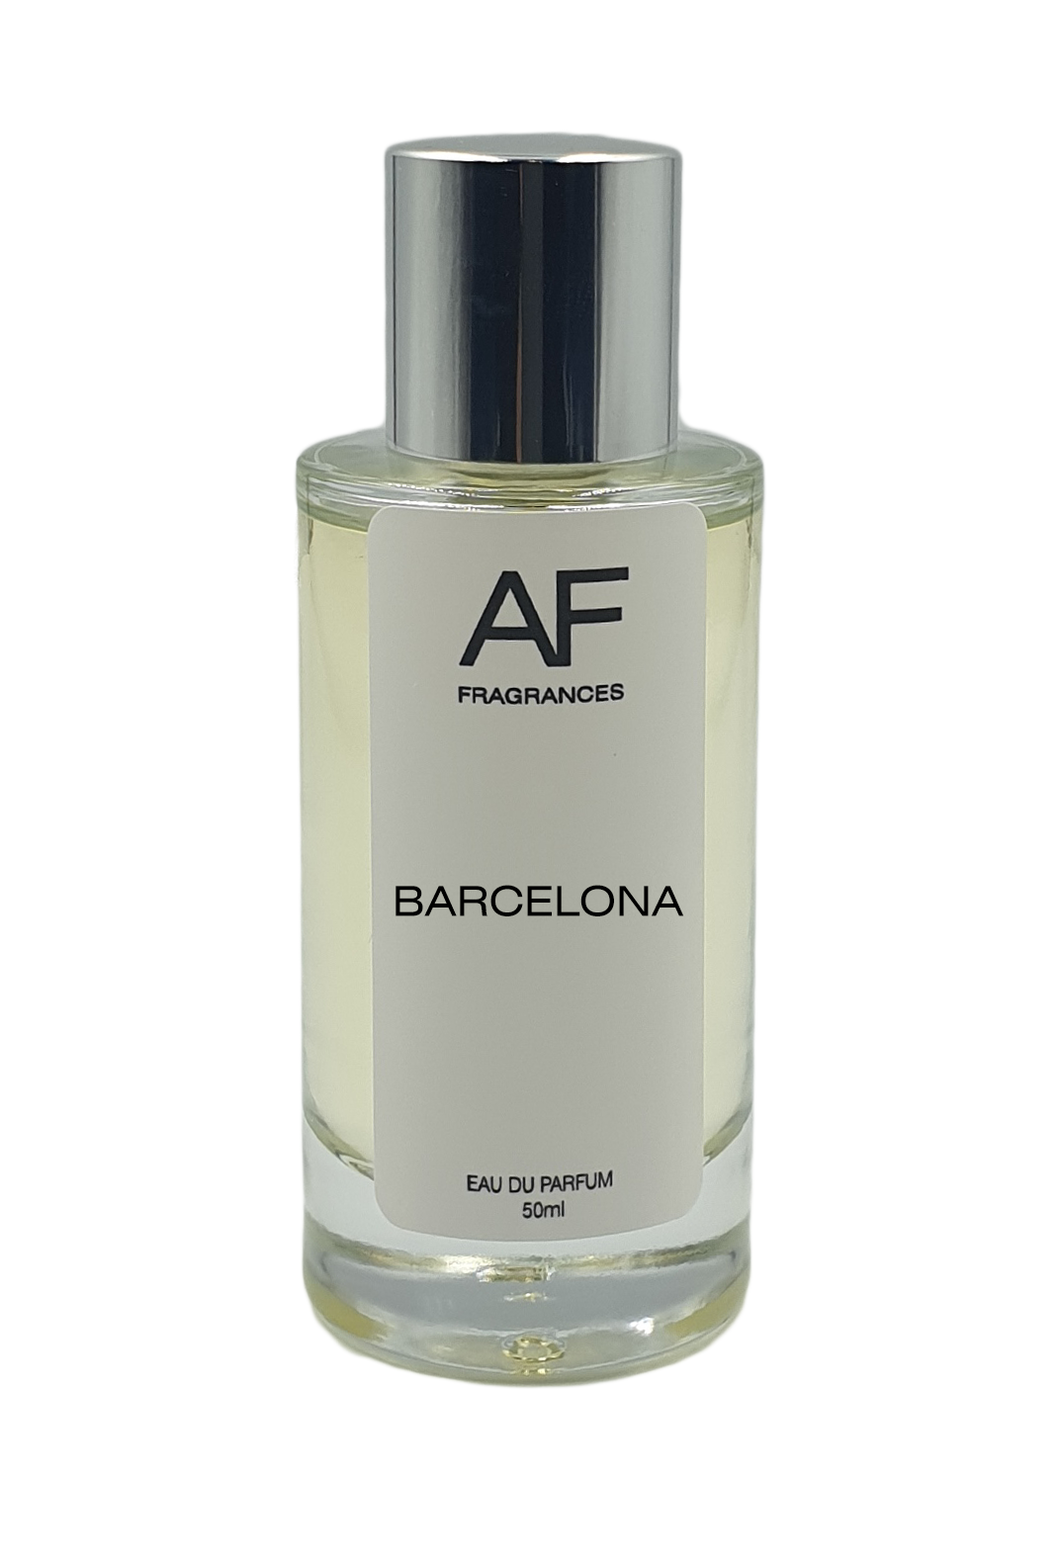 Barcelona - AF Fragrances, Attar, Oud, Musk, Perfume, Premium quality